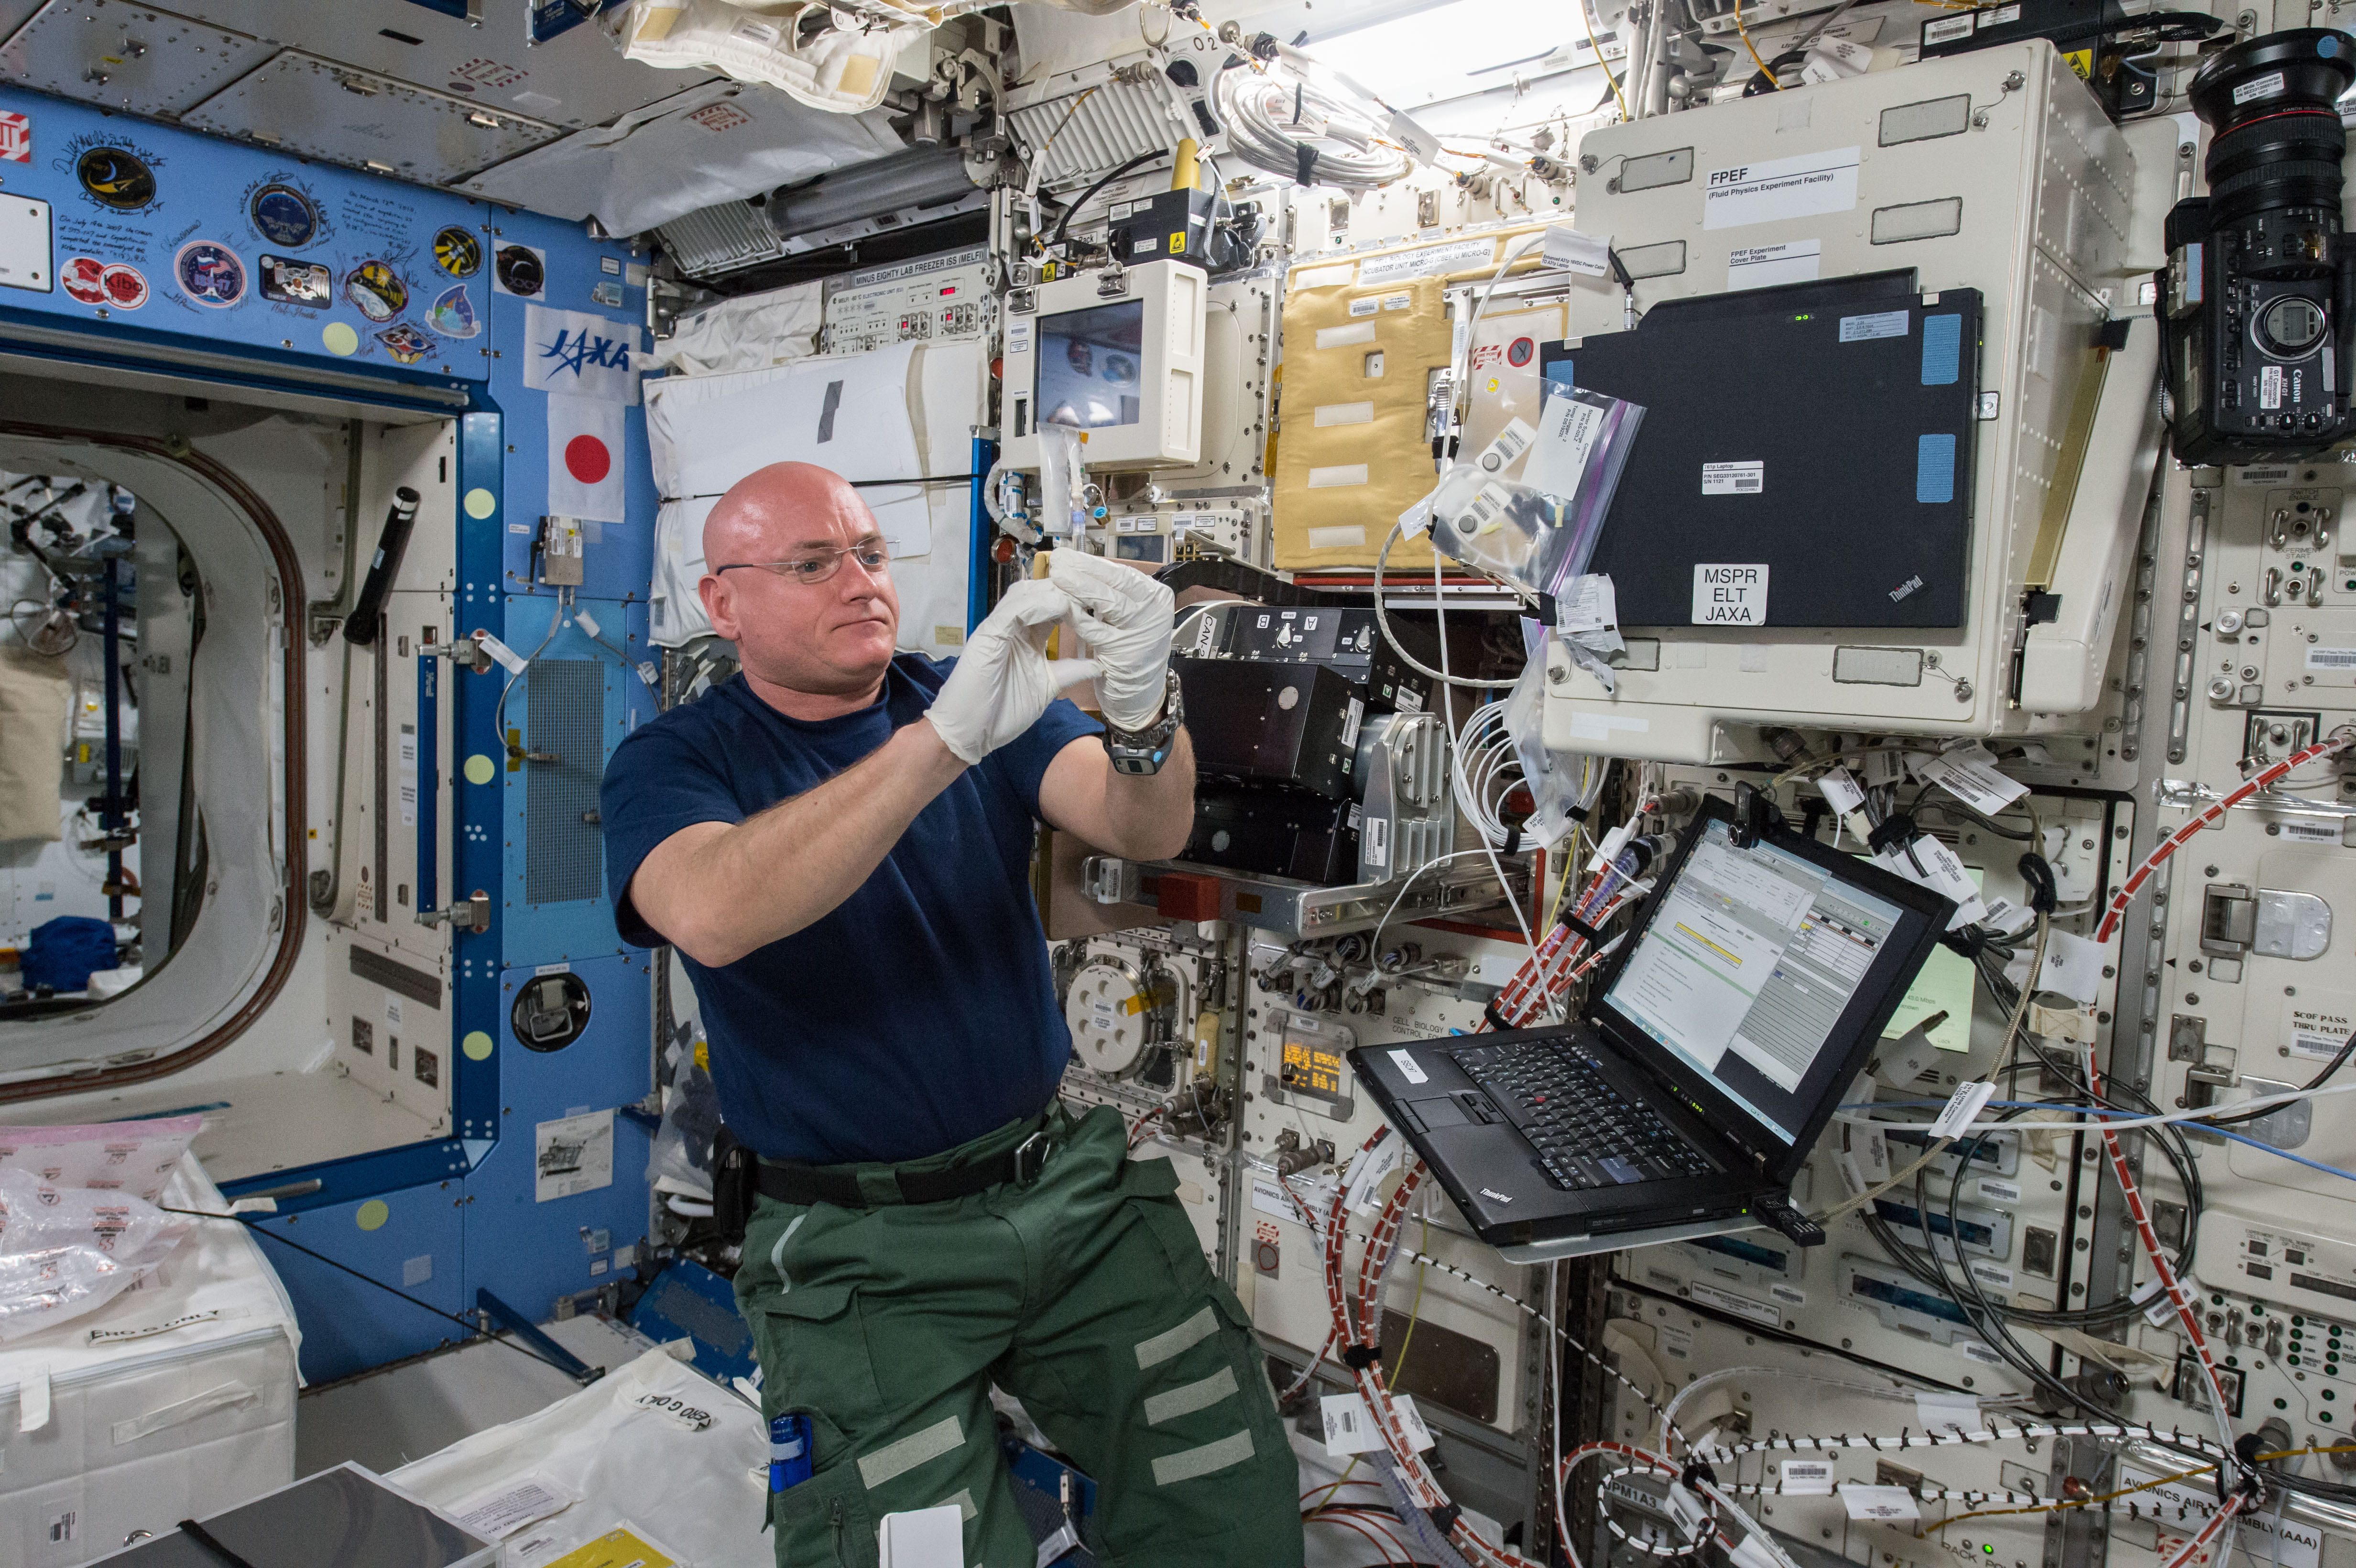 astronaut working on space station - photo #38